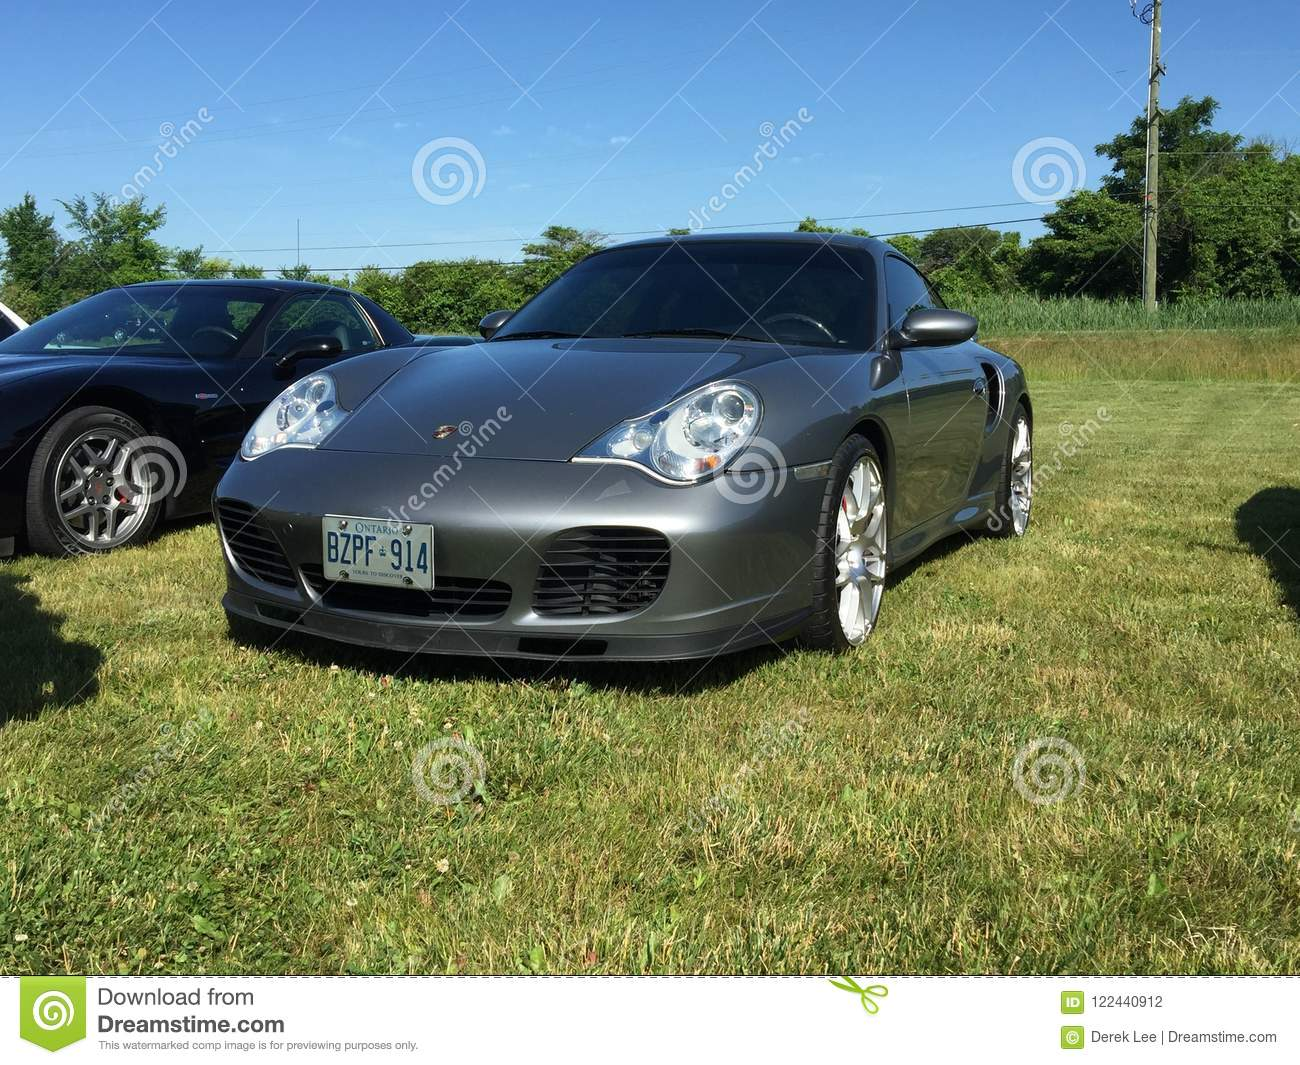 Nice Sports Car At And Coffee Event In Komoka Ontario Editorial Photography Image Of Outdoor Nature 122440912